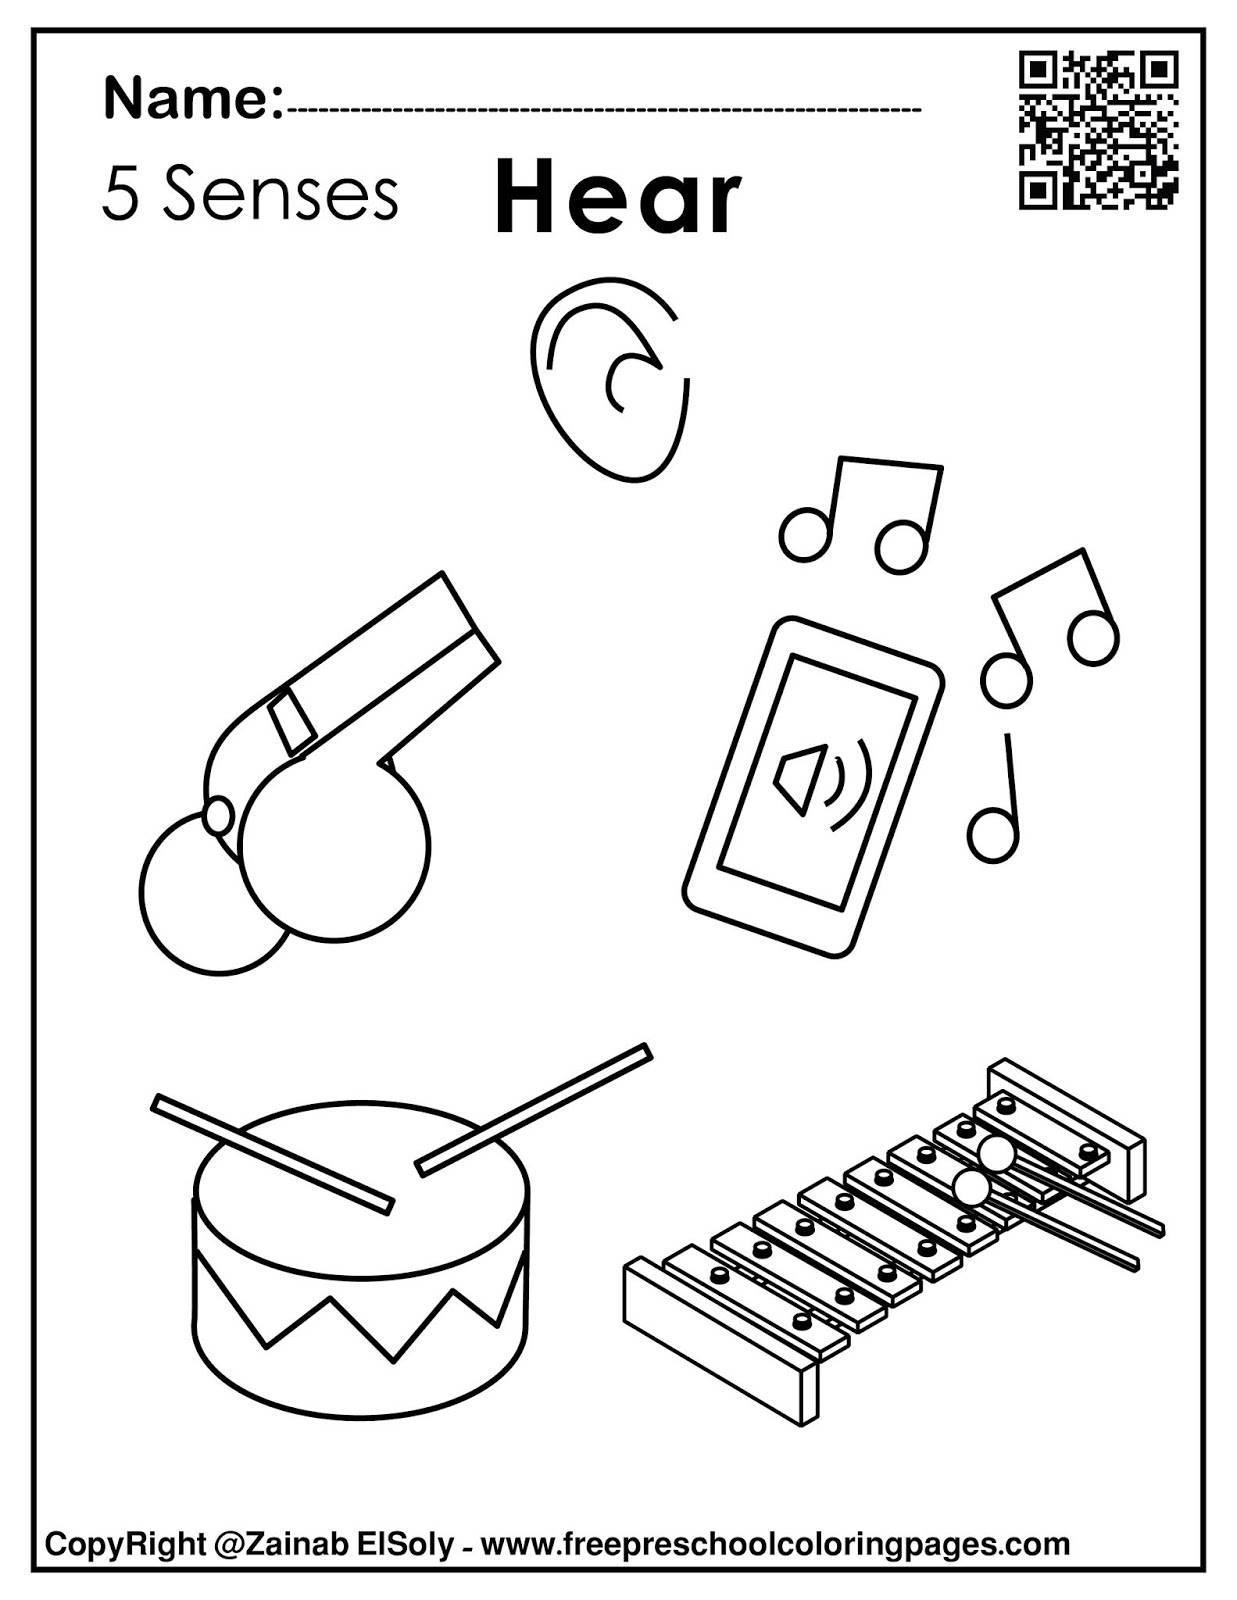 Five senses clipart coloring page, Picture #43360 five senses ... | 1600x1237